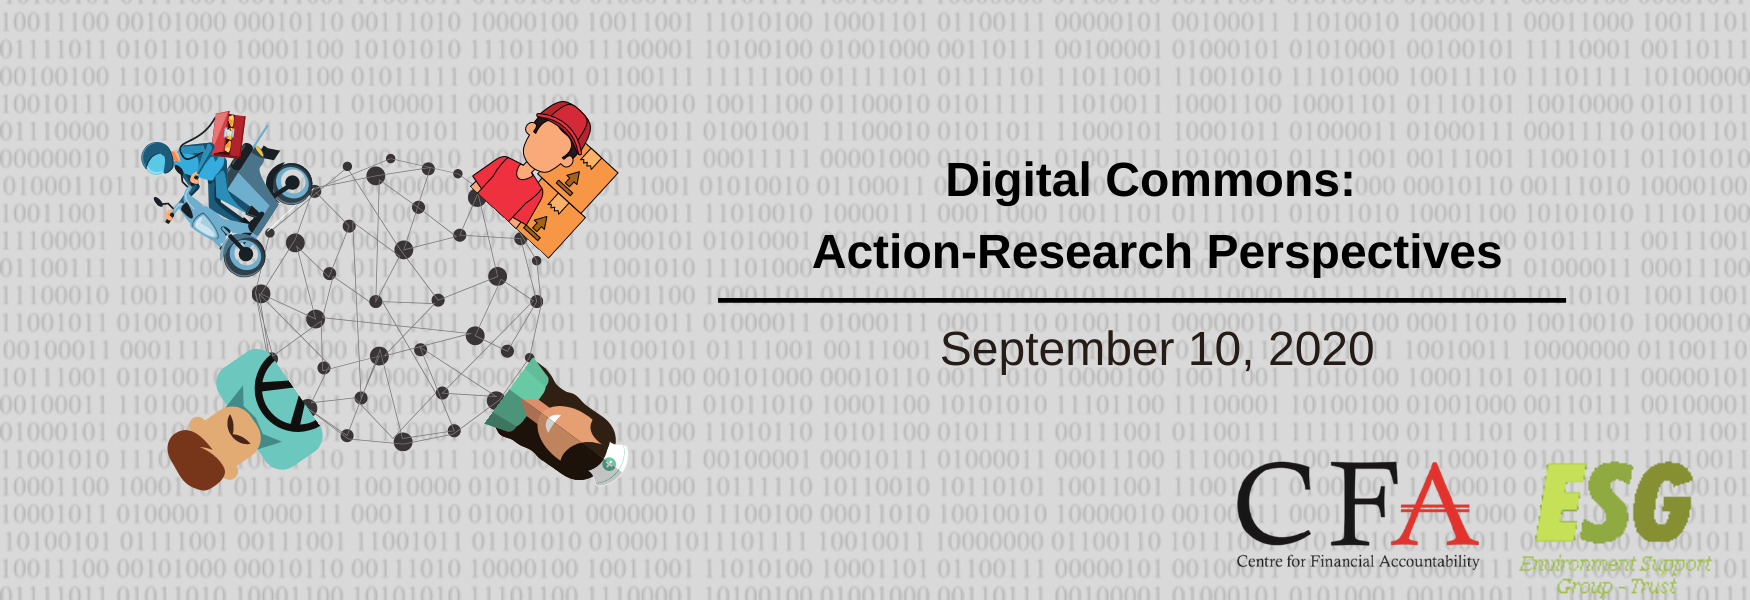 Digital Commons: Action-Research Perspectives